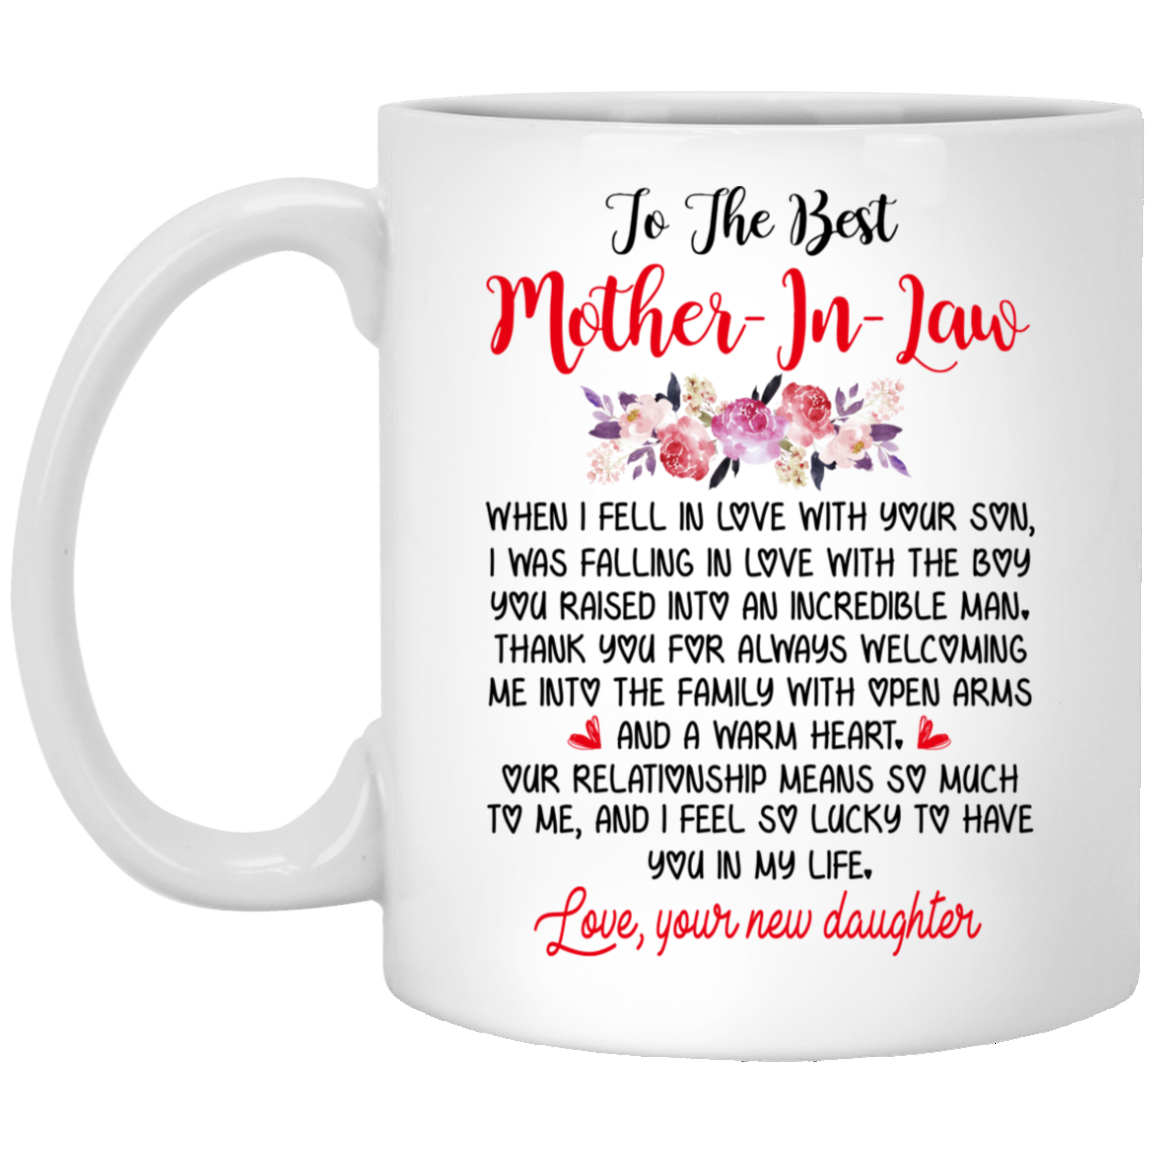 To the Best Mother-in-law, I Feel So Lucky To Have You In My Life Mug